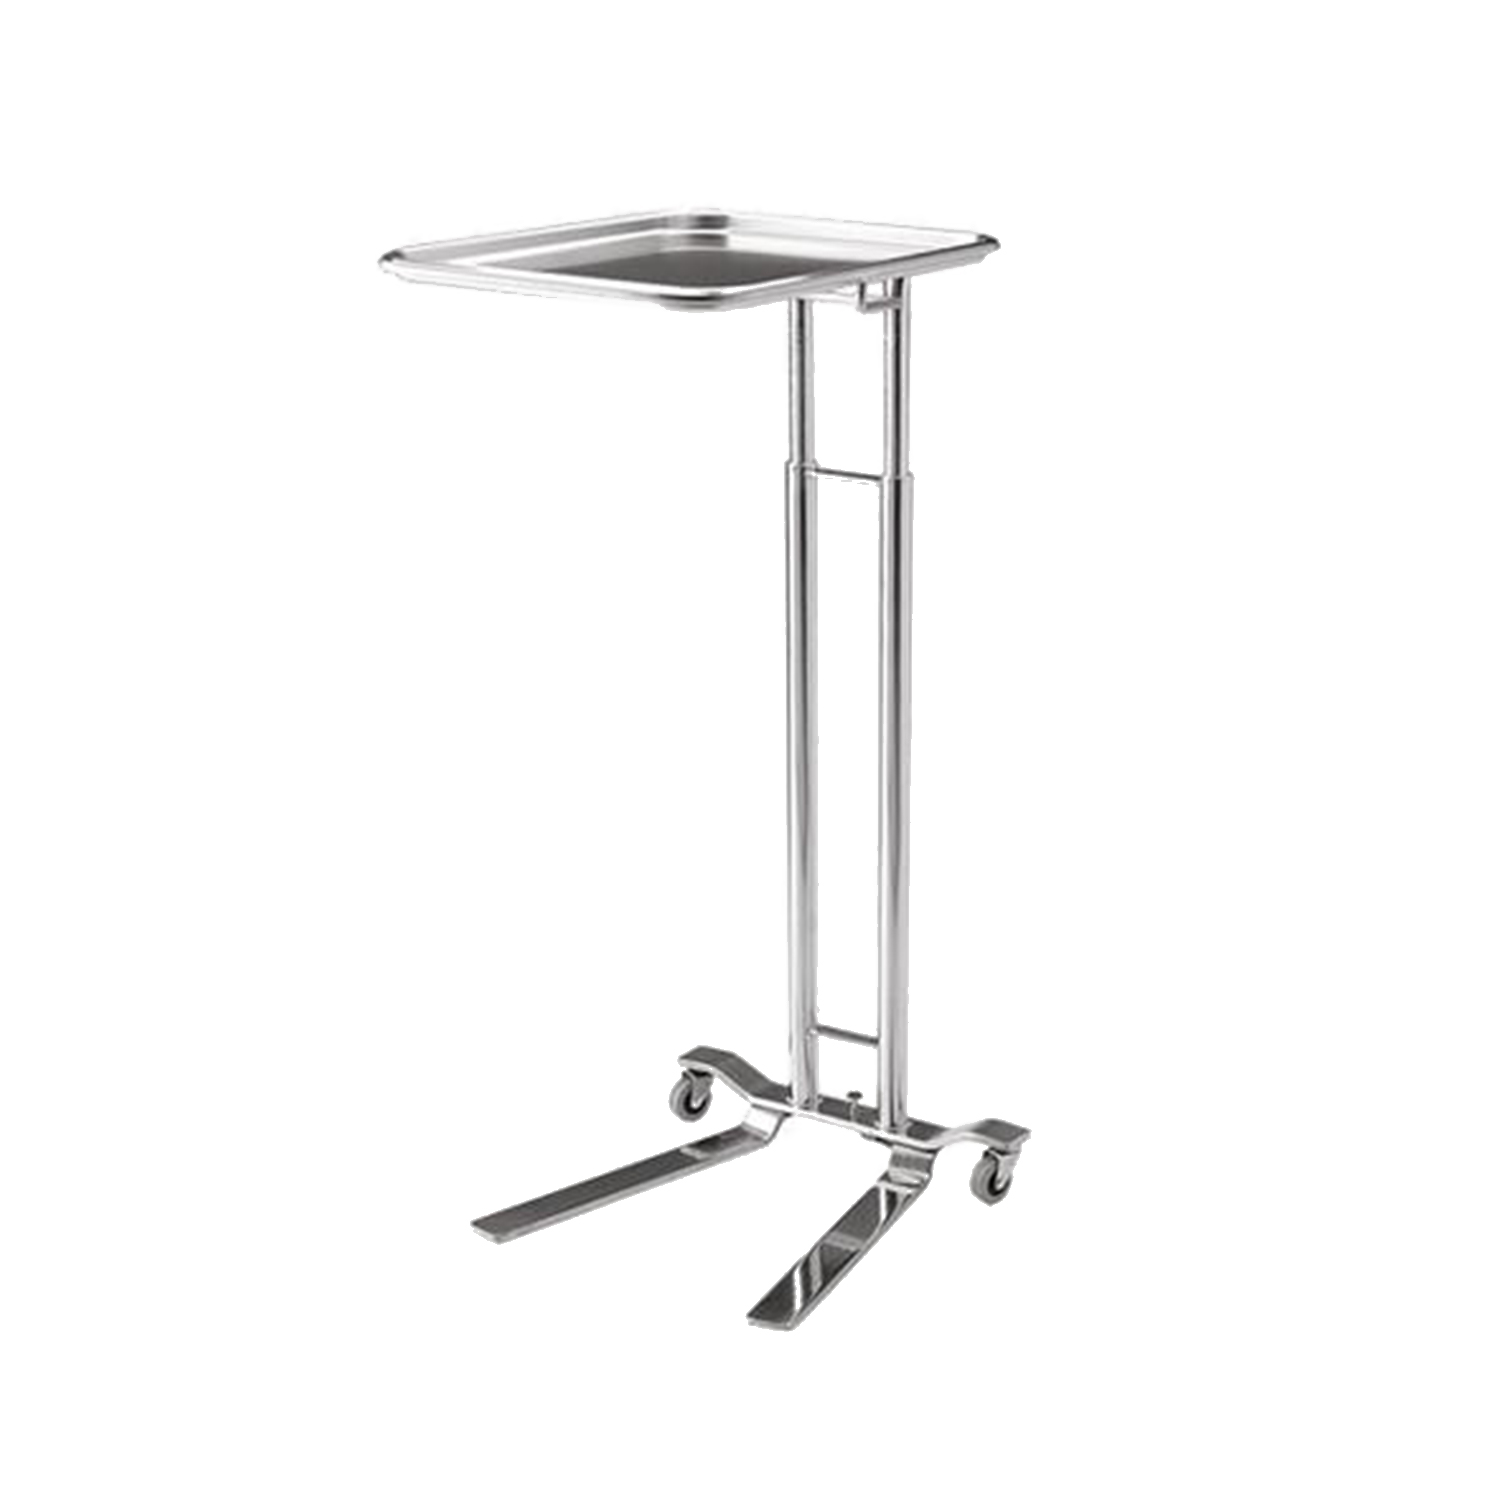 Pedigo 1066 Foot Operated Stainless Steel Mayo Stand